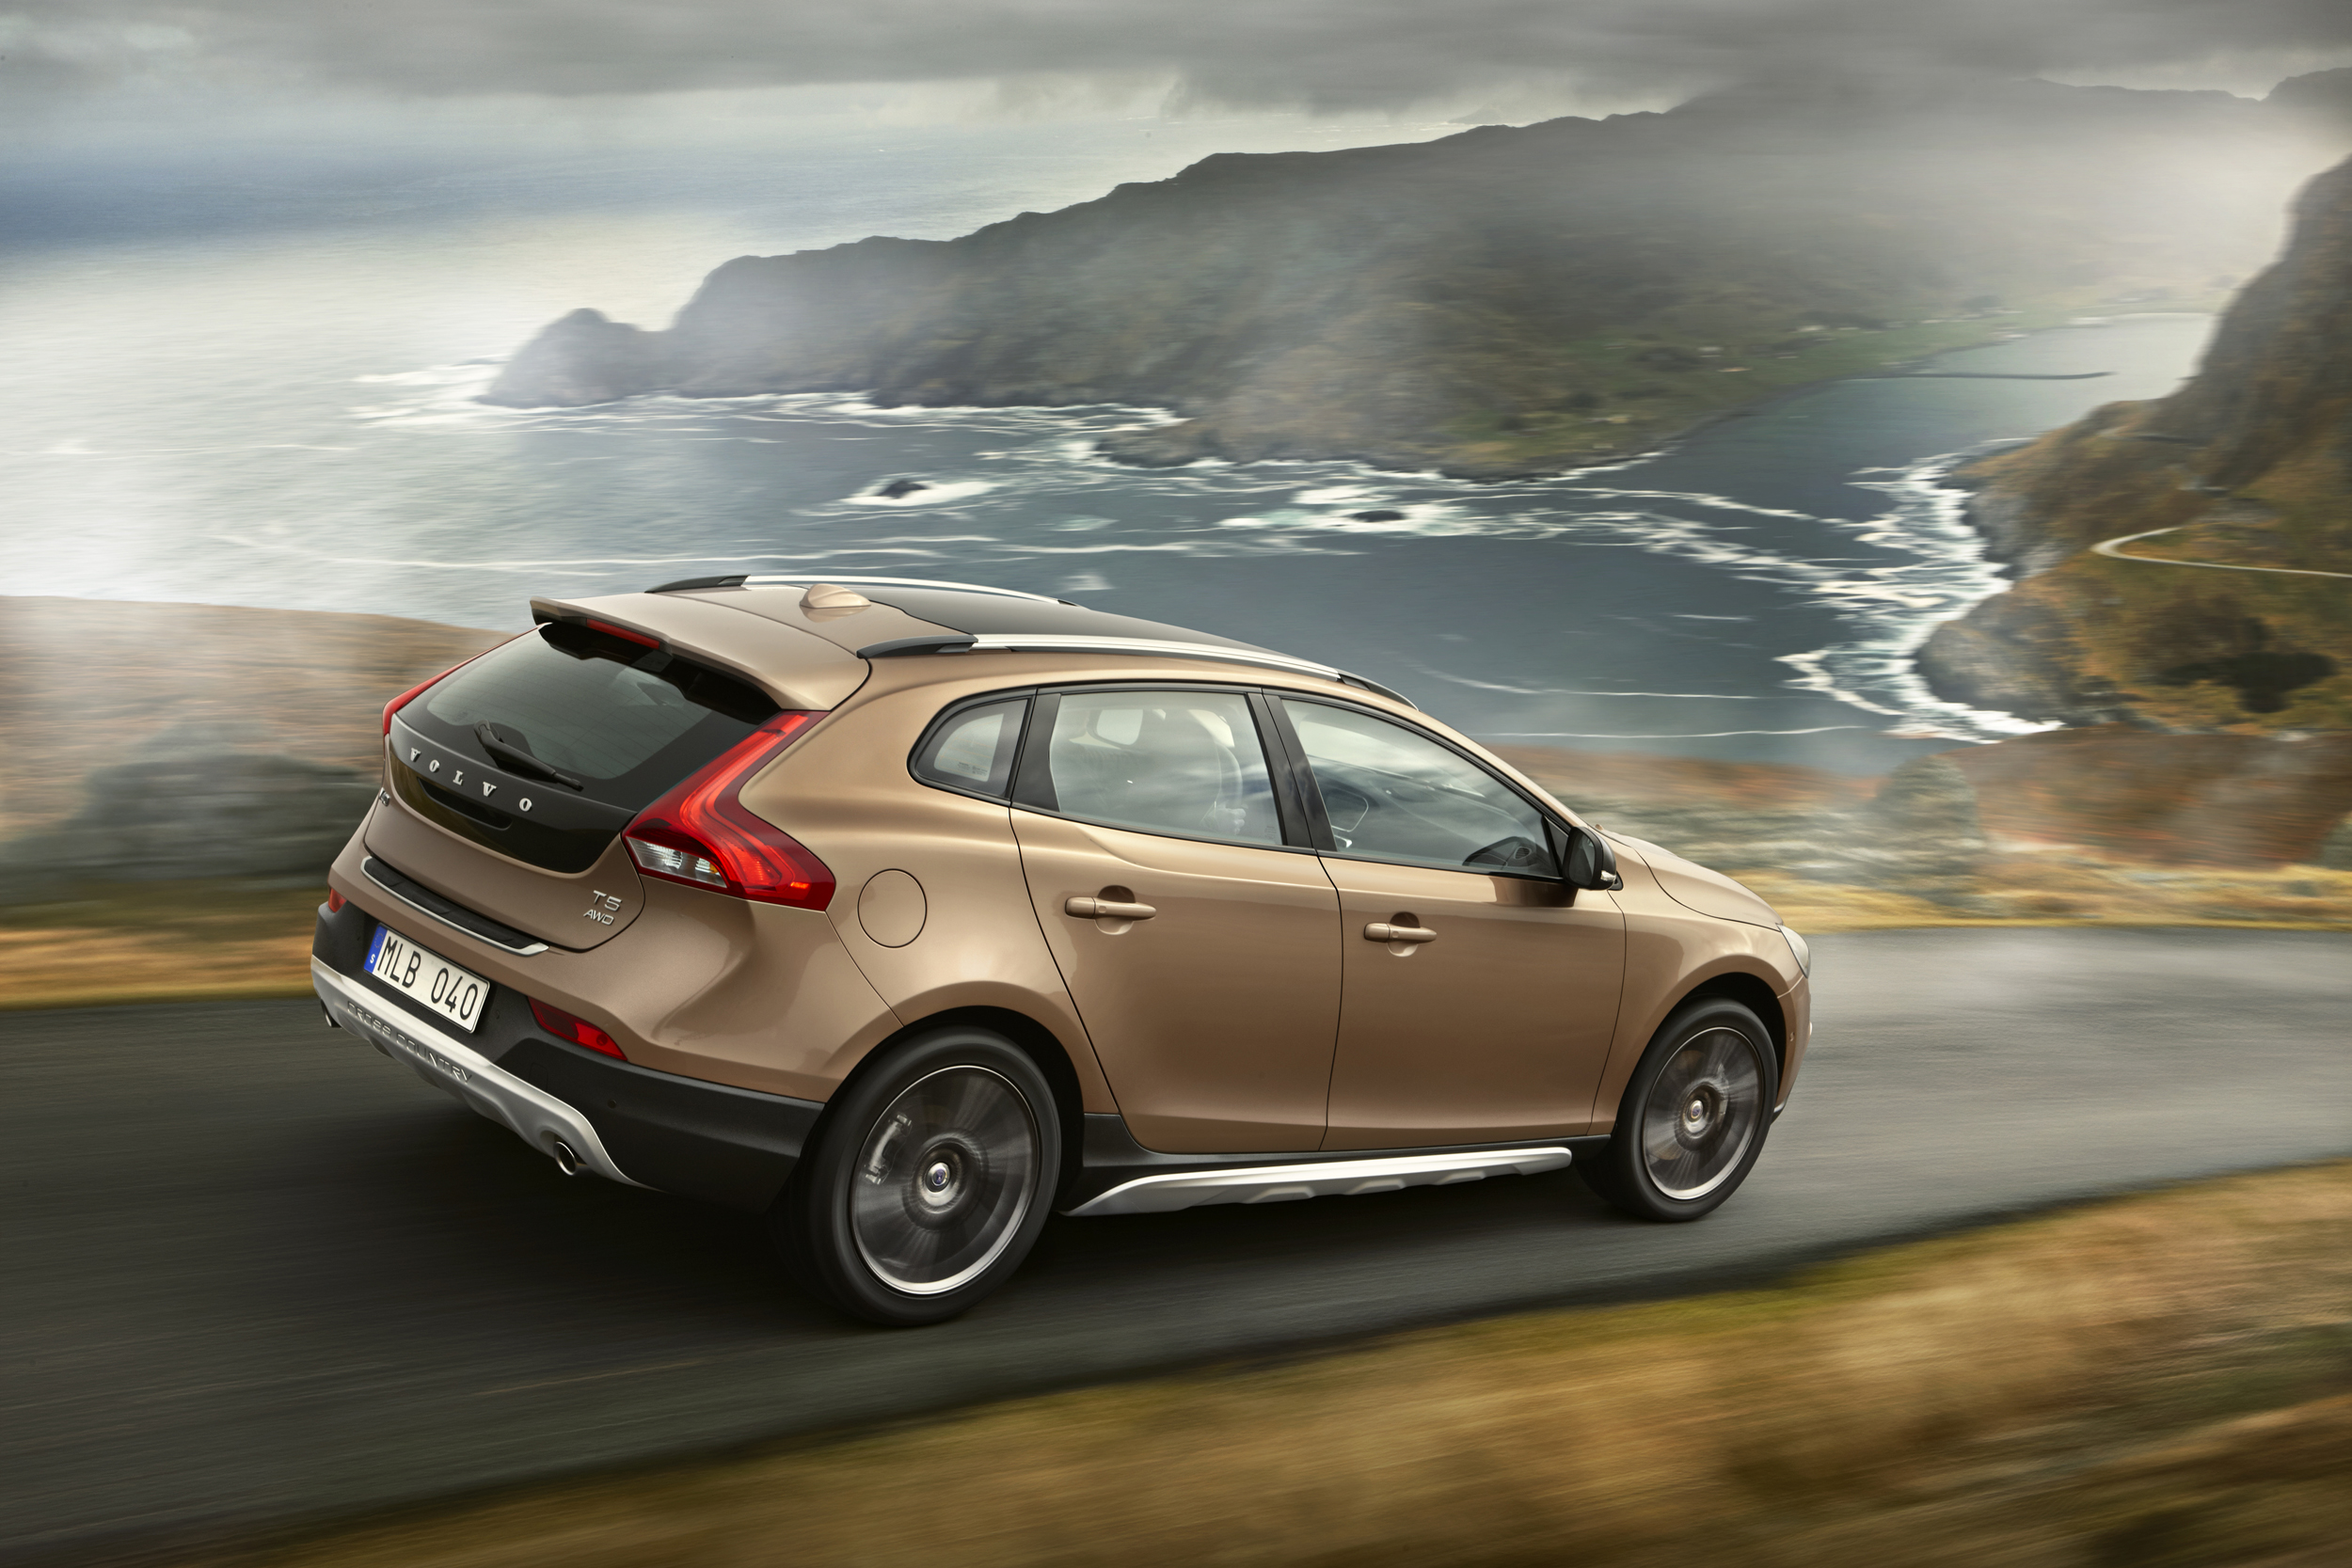 mondial de paris 2012 nouvelle volvo v40 cross country. Black Bedroom Furniture Sets. Home Design Ideas